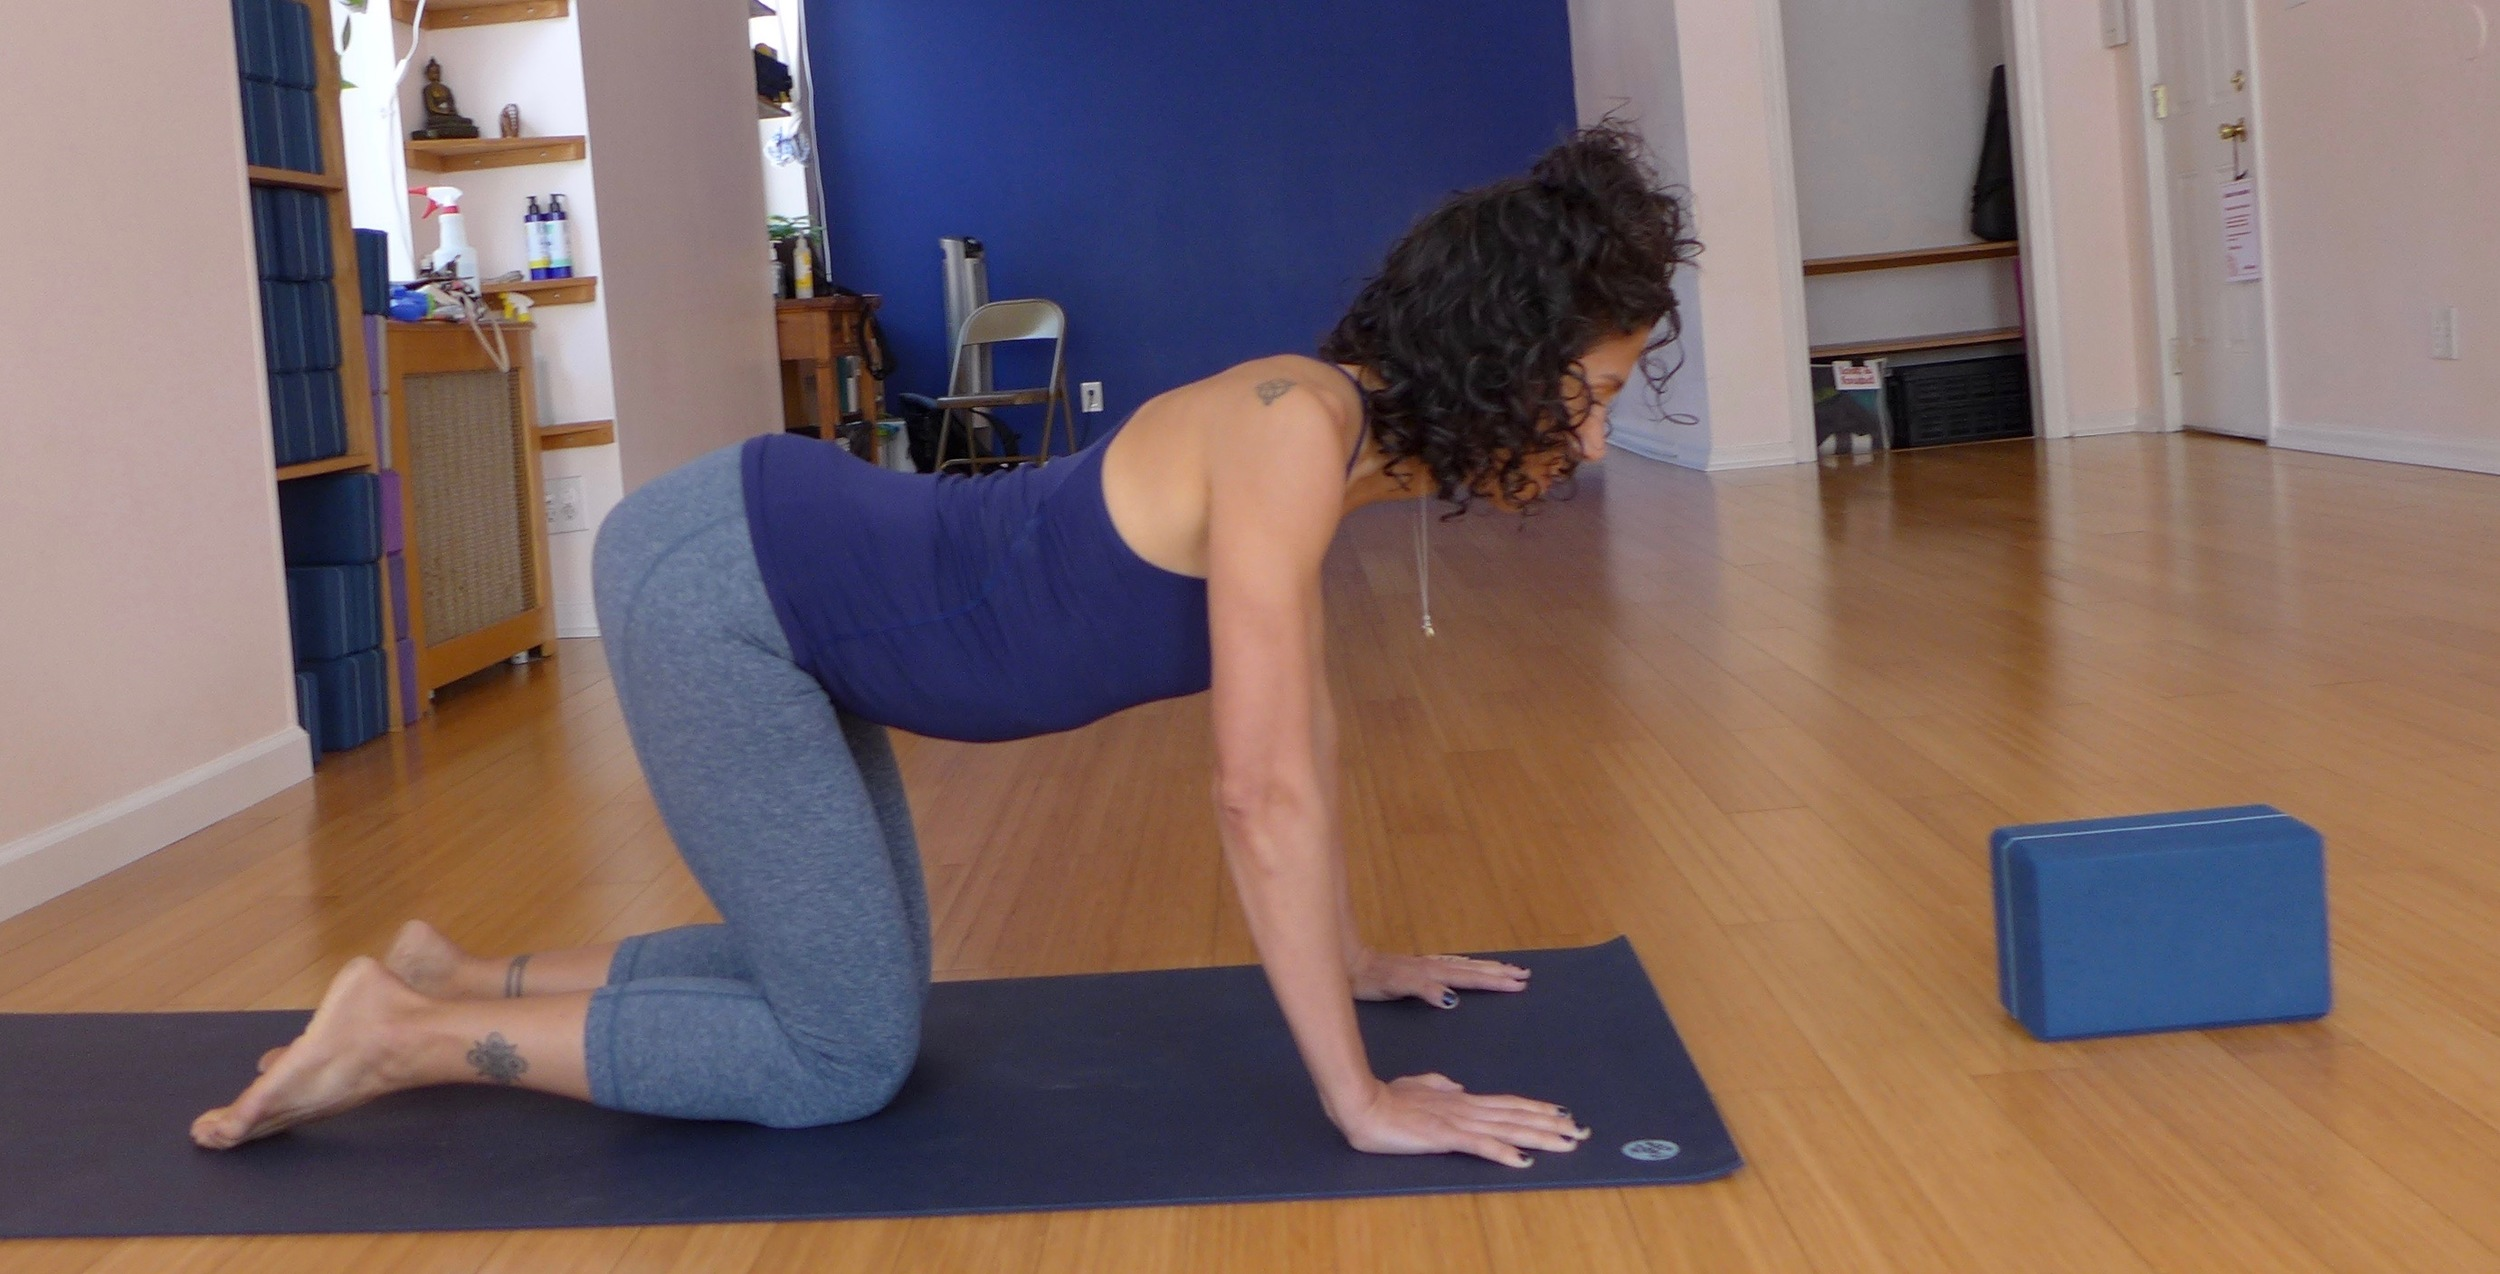 "Cow pose: Here's a visual of what happens when we move our spine towards the floor in cow pose, as opposed to the block at the front of the yoga mat. There's too much compression on the lumbar and cervical disks, and our spine has no support from the arms and legs.  Think of your spine as a shoelace you're pulling in opposite directions instead a twisty-tie that you're making into a ""u"" shape."